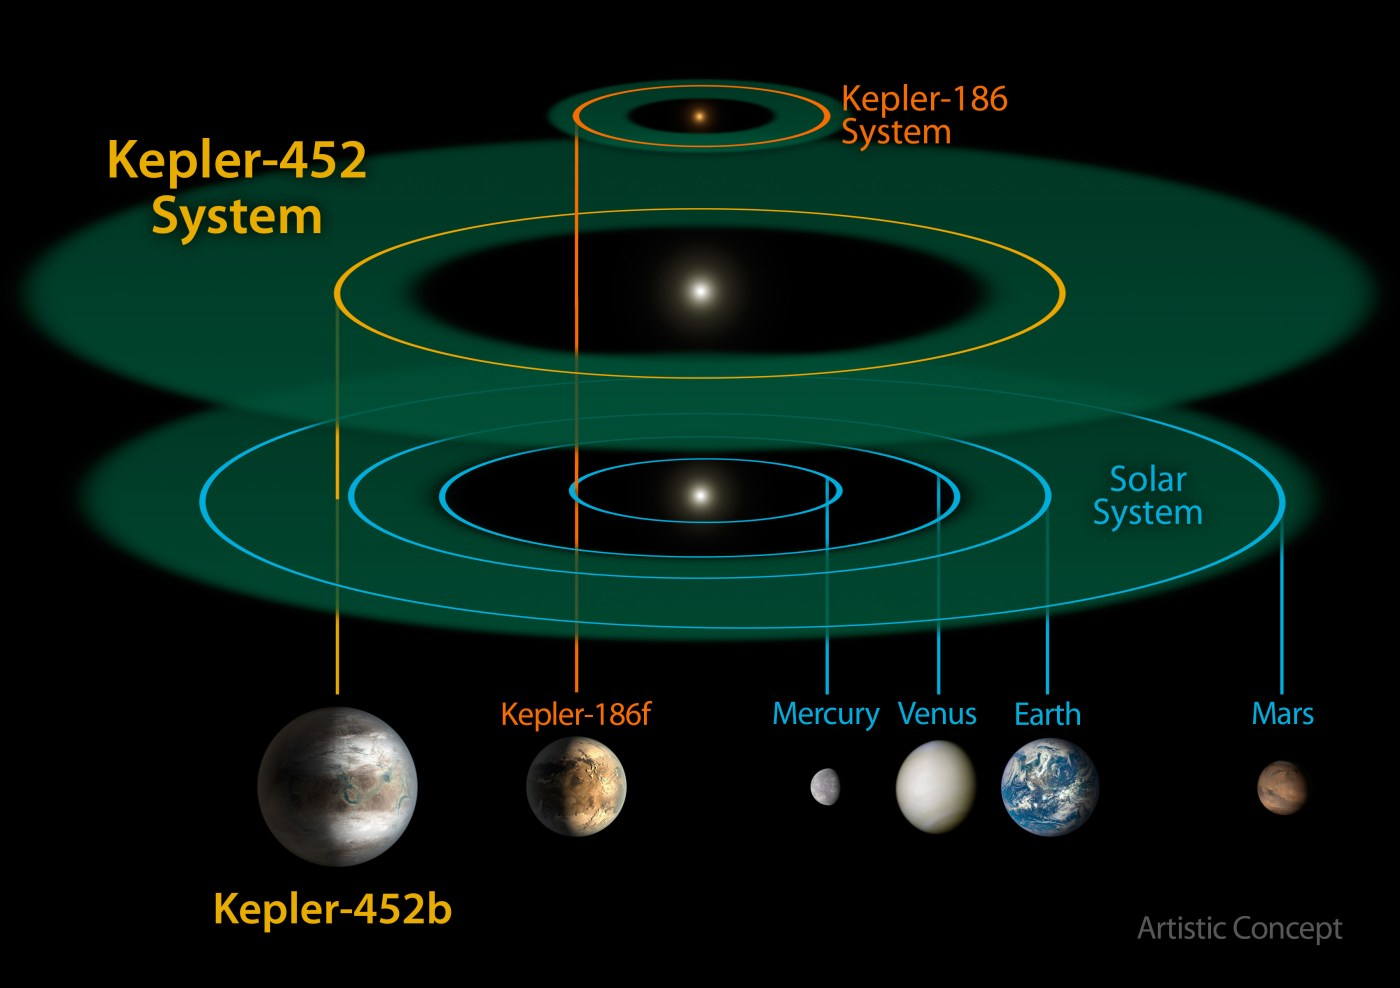 This size and scale of the Kepler-452 system